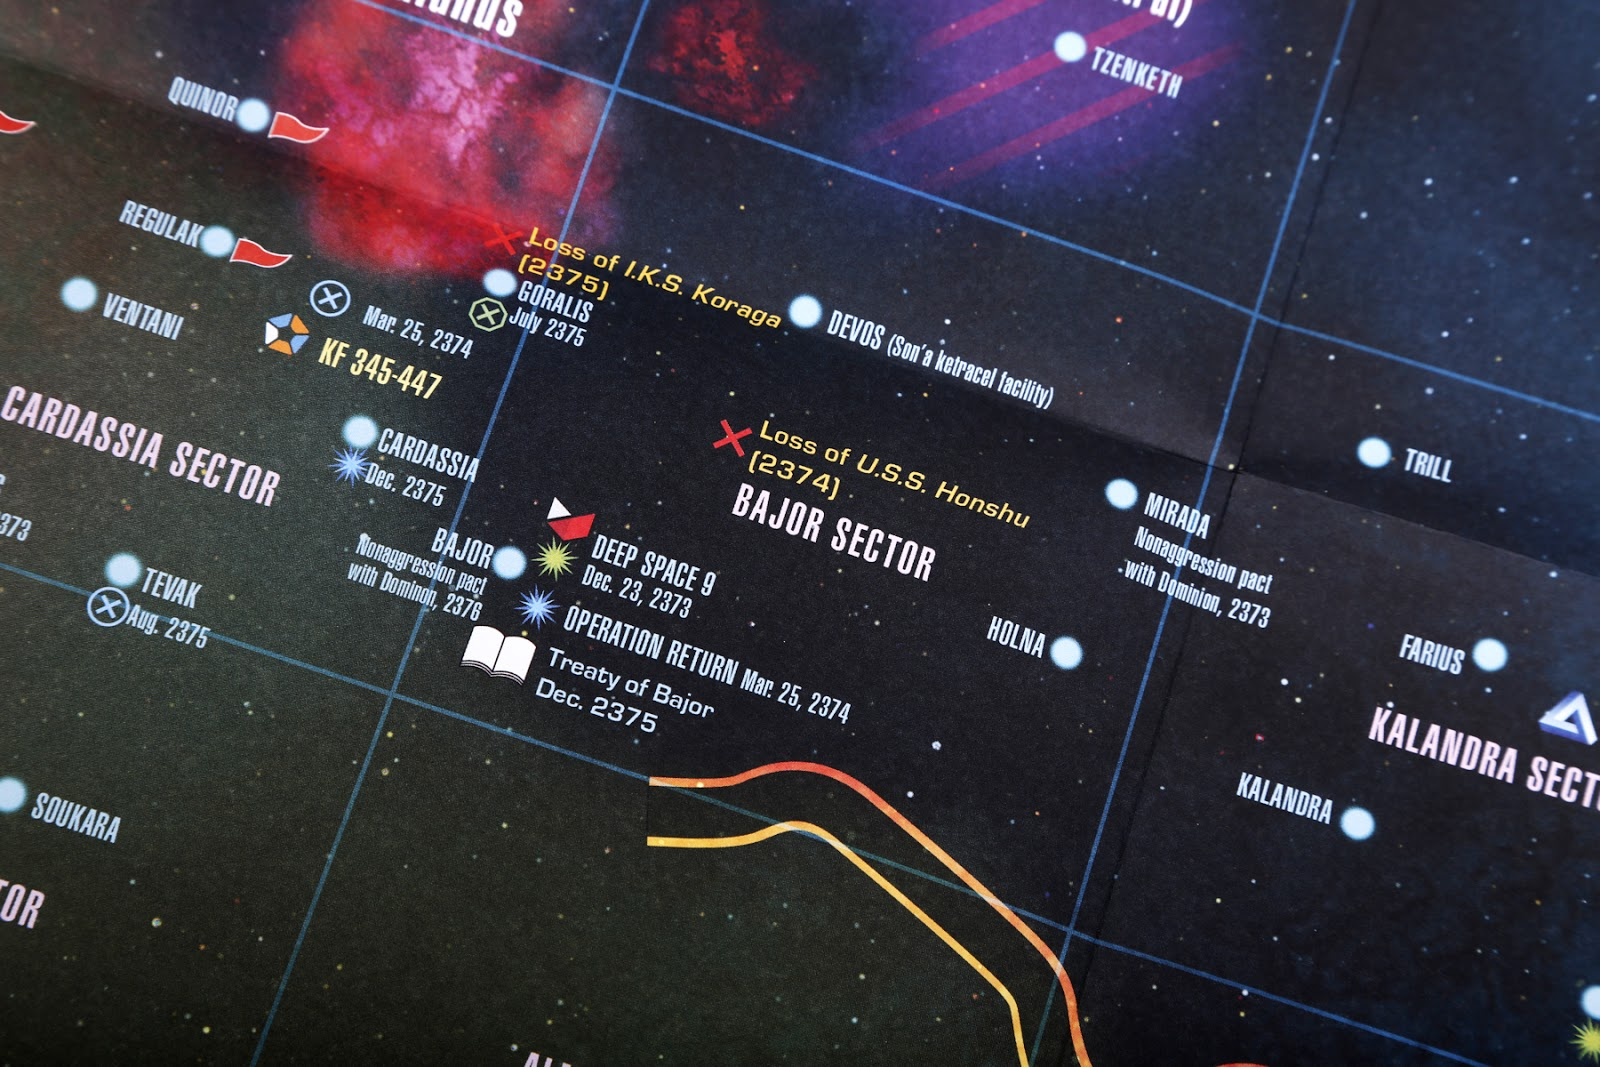 The trek collective review stellar cartography details around deep space 9 fandeluxe Document